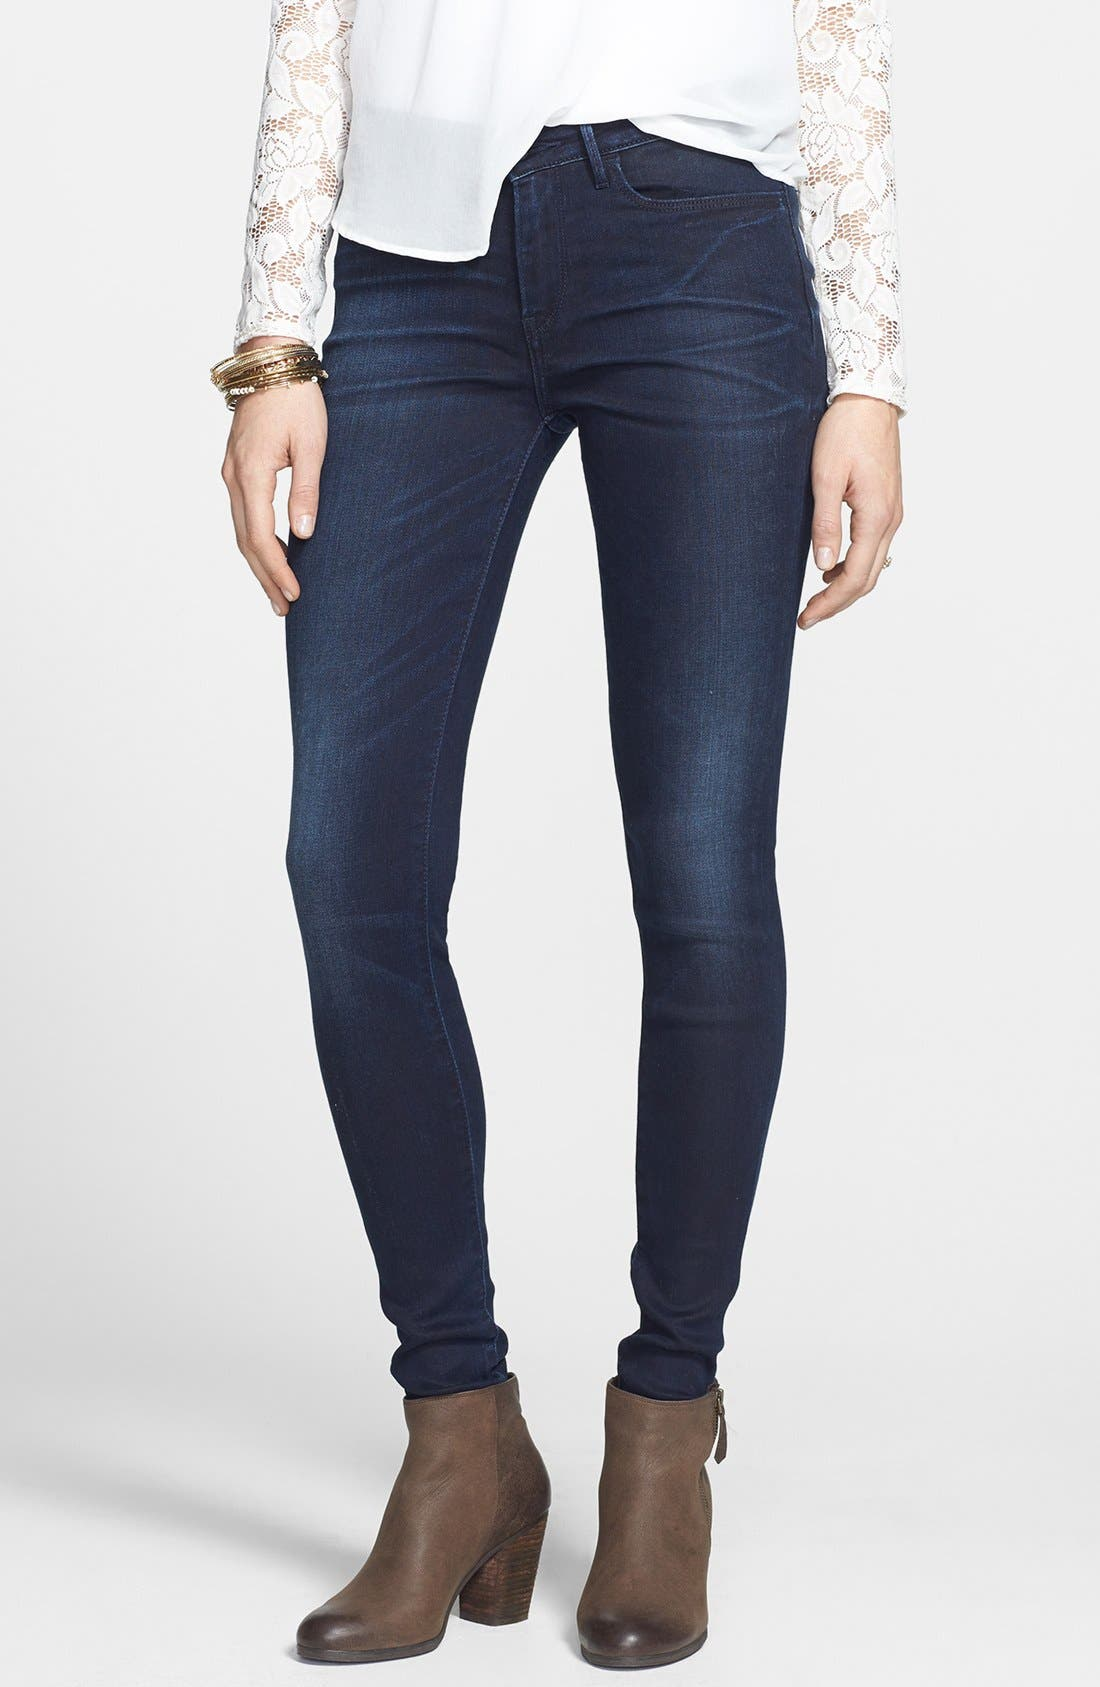 Main Image - Levi's® 'Core Better Legging' Skinny Jeans (Dark)